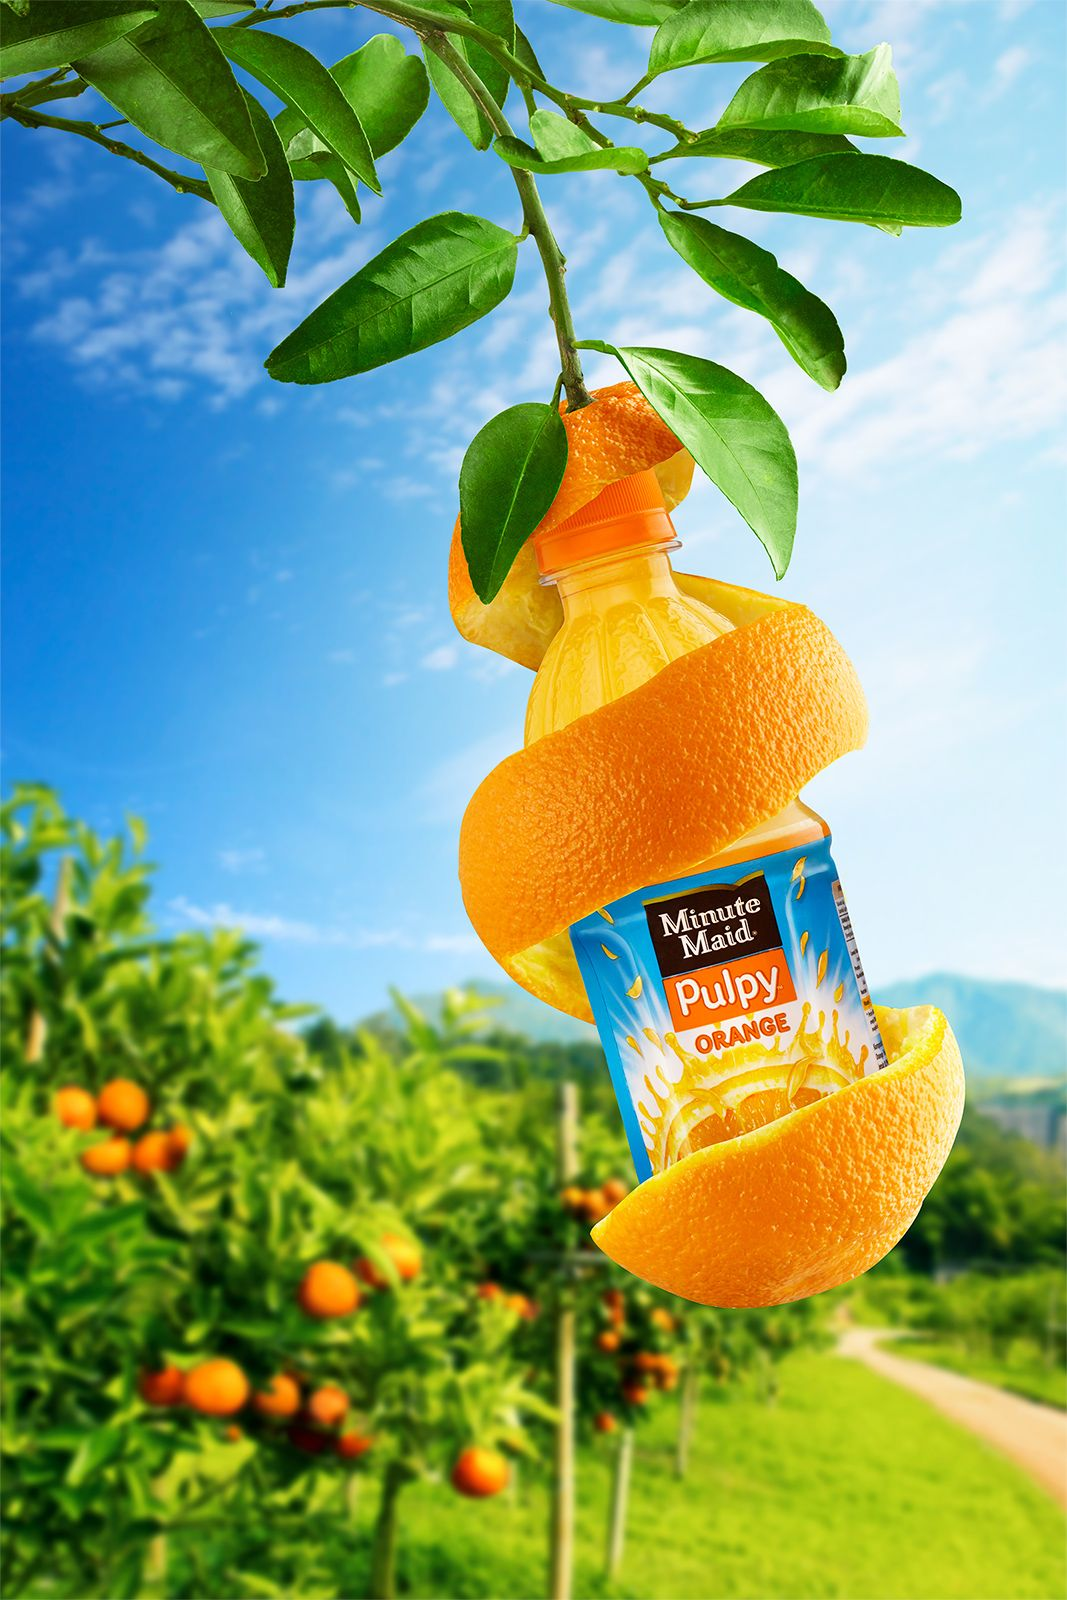 Minute Maid Tree on Behance | Ads creative, Graphic design ...